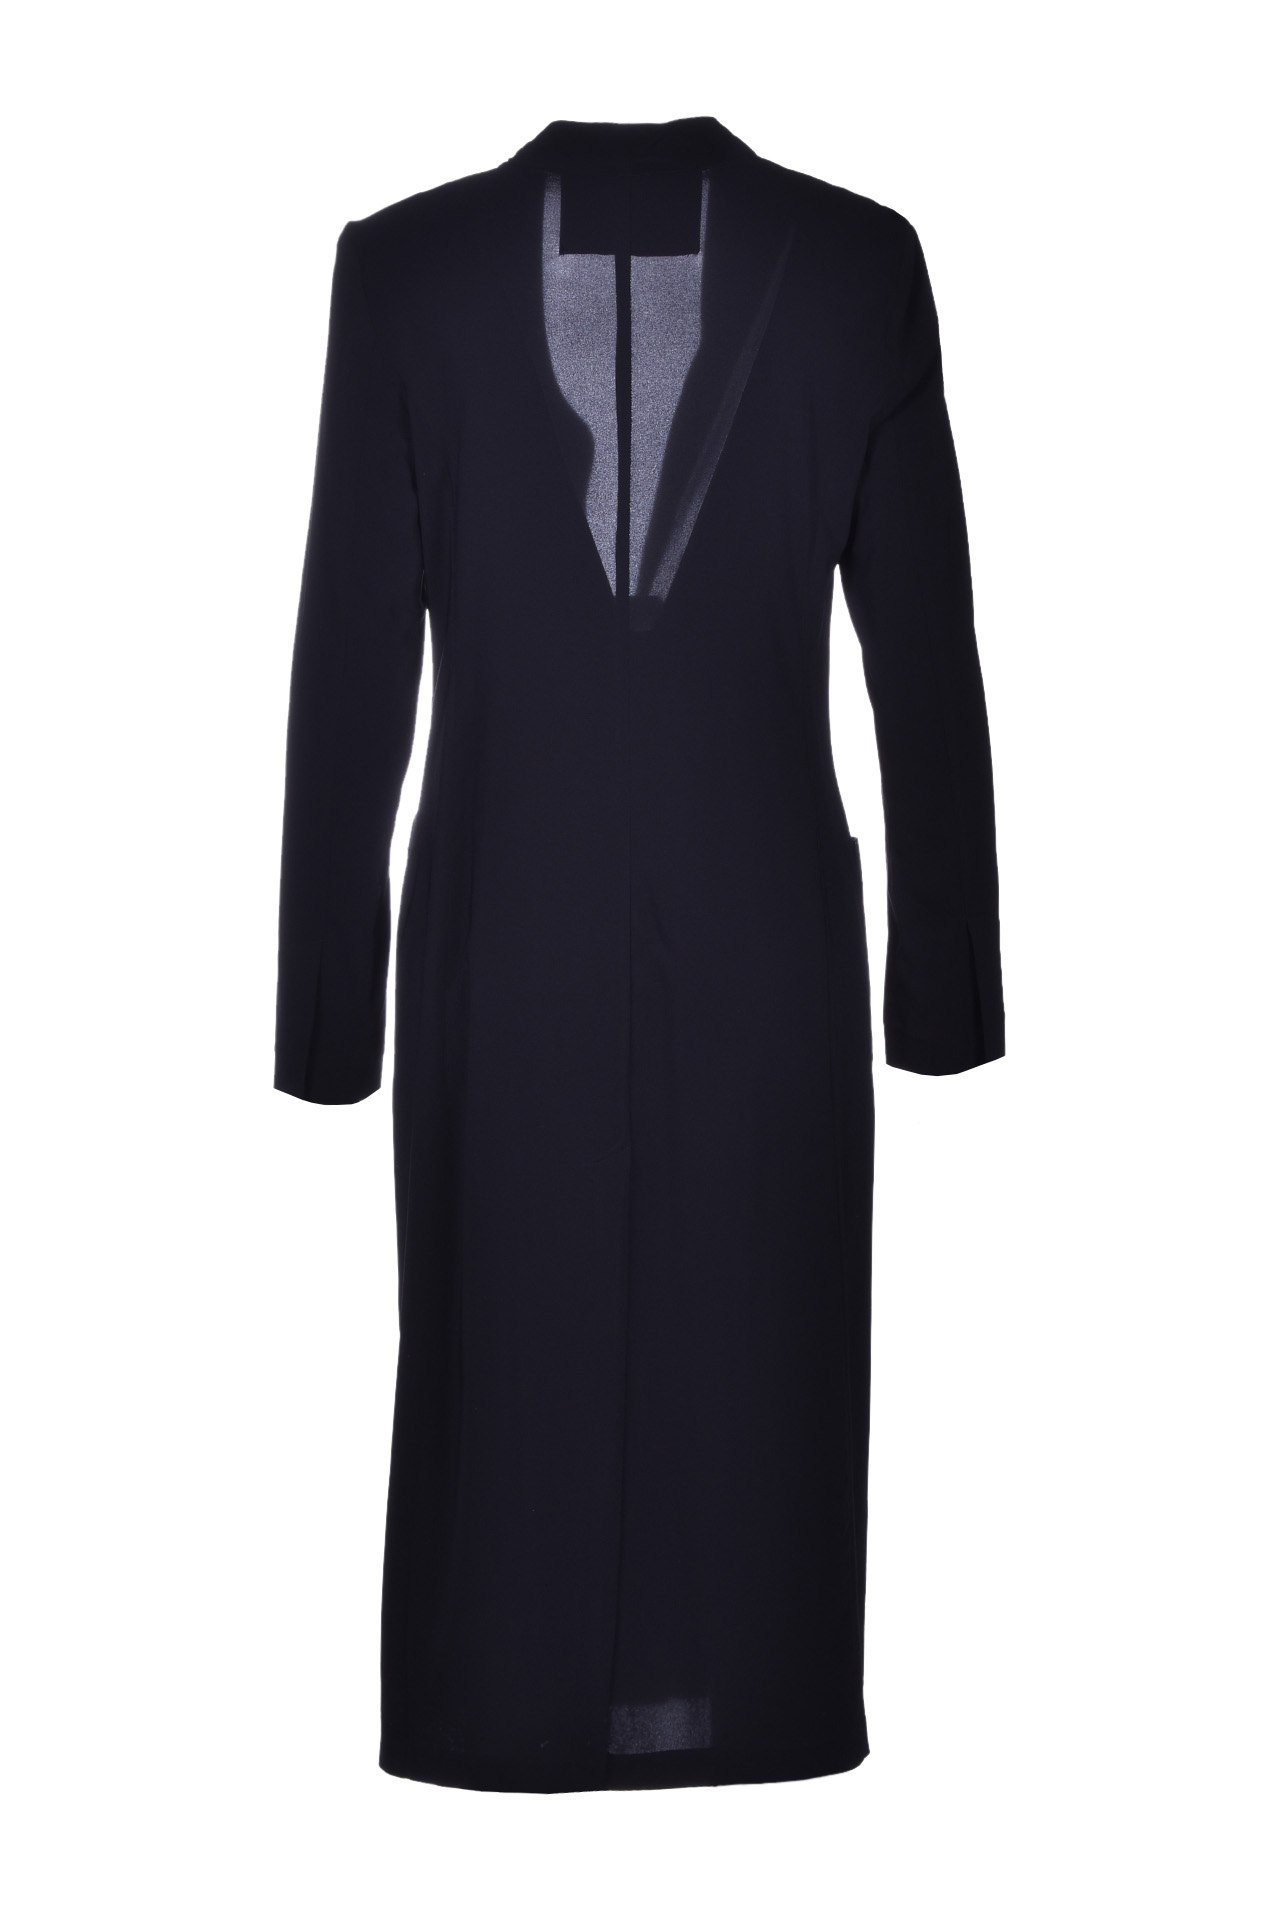 Long dust coat with pockets - black JUCCA |  | J3116001003